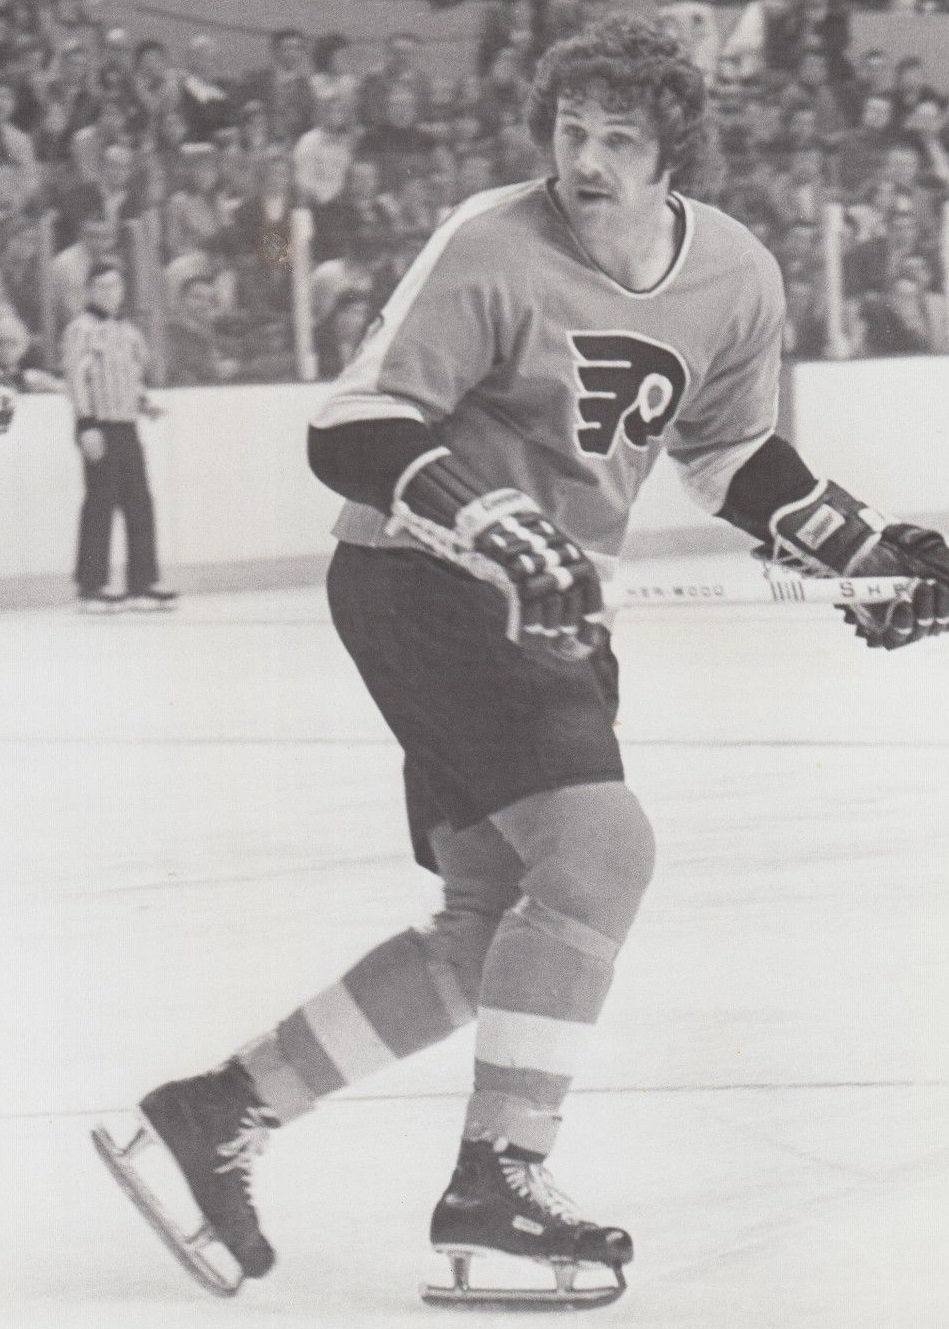 online store fc5a3 be989 Dave Schultz (ice hockey) - Wikipedia